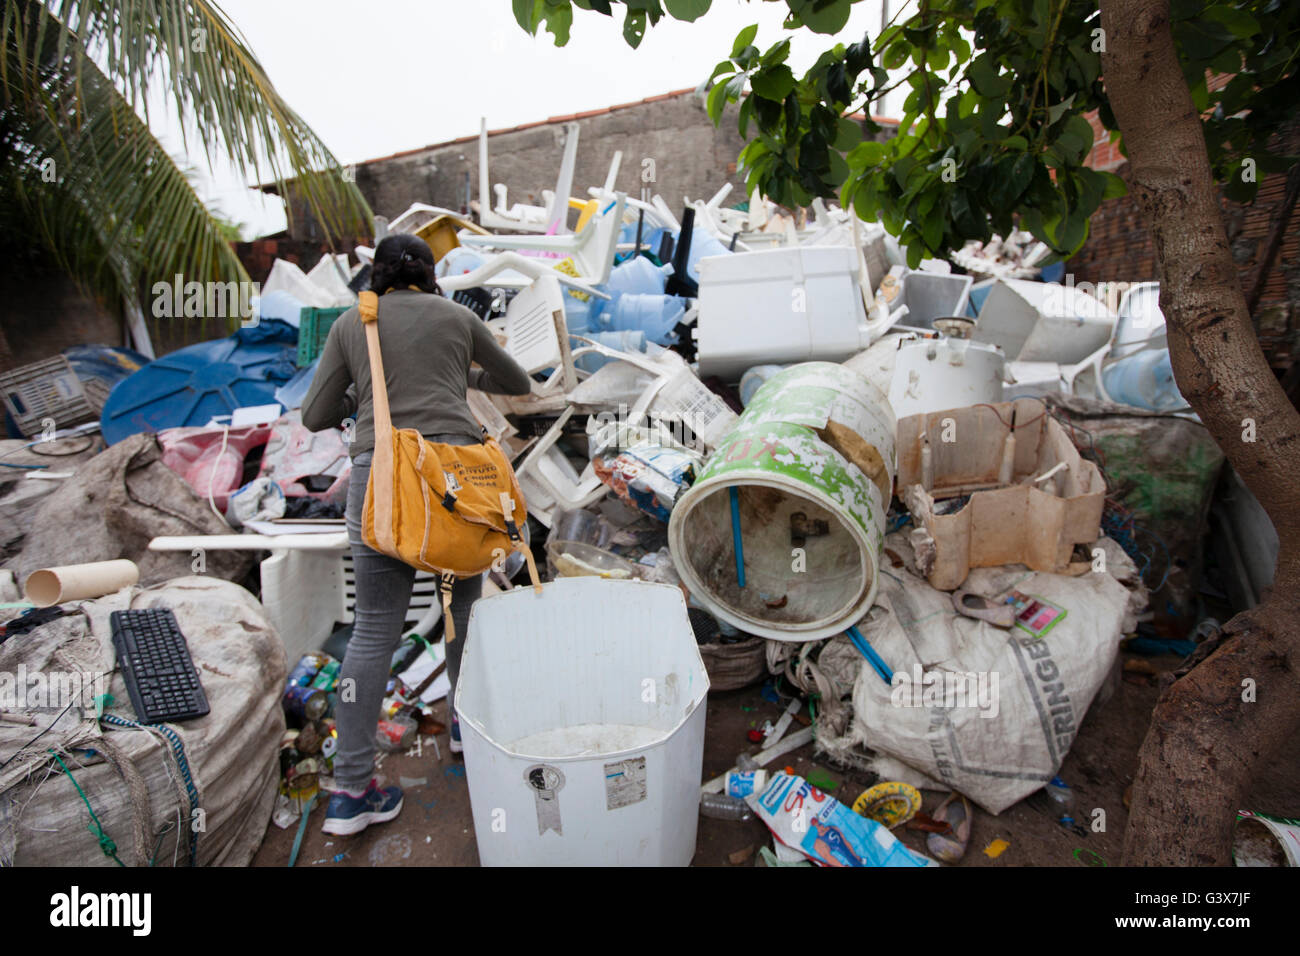 Entomologists collecting mosquitos in an infested area of dump in Natal city to be tested for Zika virus, Brazil. - Stock Image